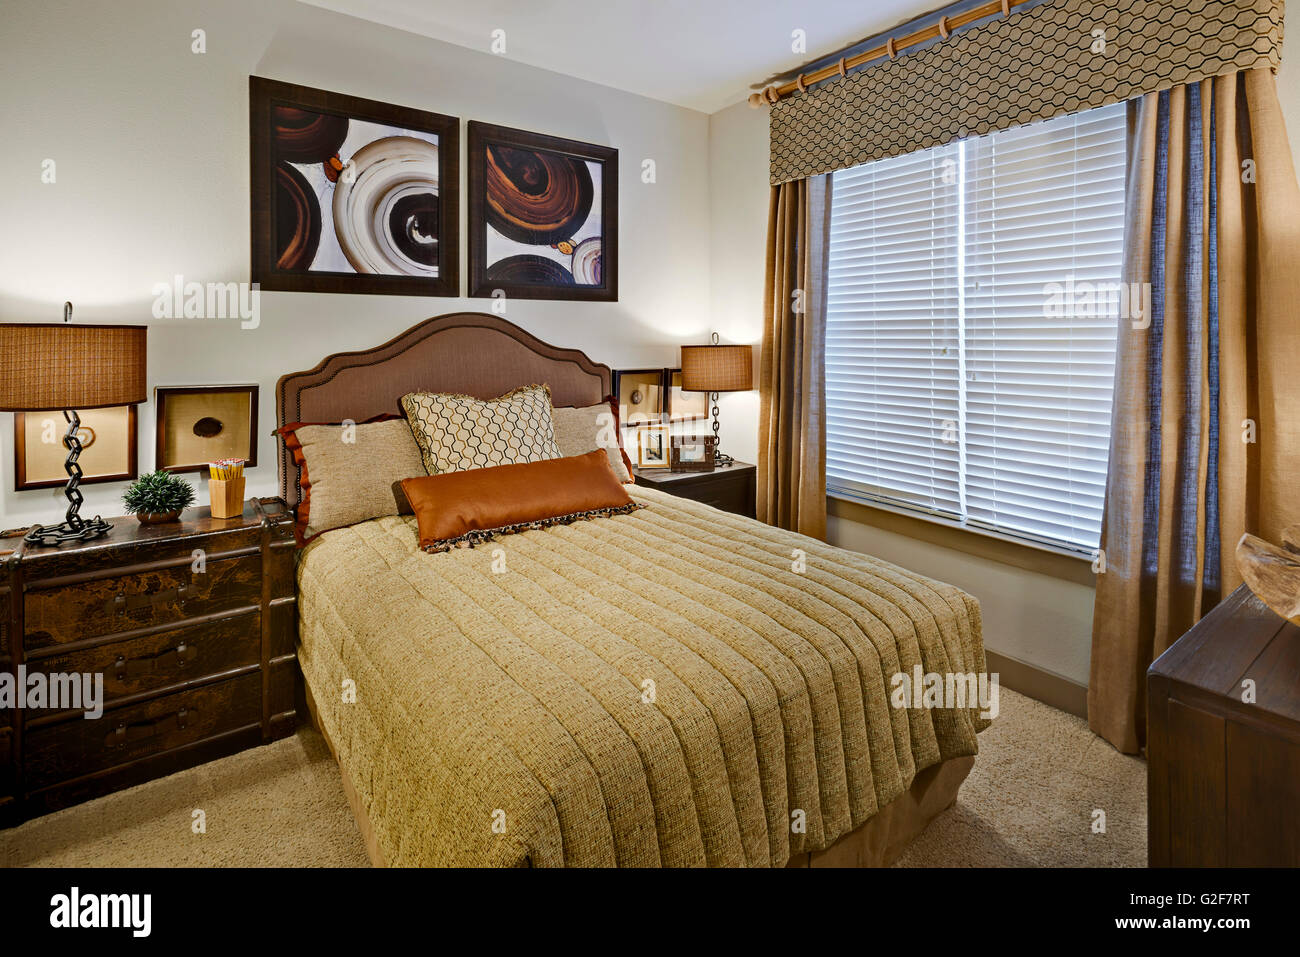 Ordinaire Small Bedroom With Full Size Bed   Stock Image